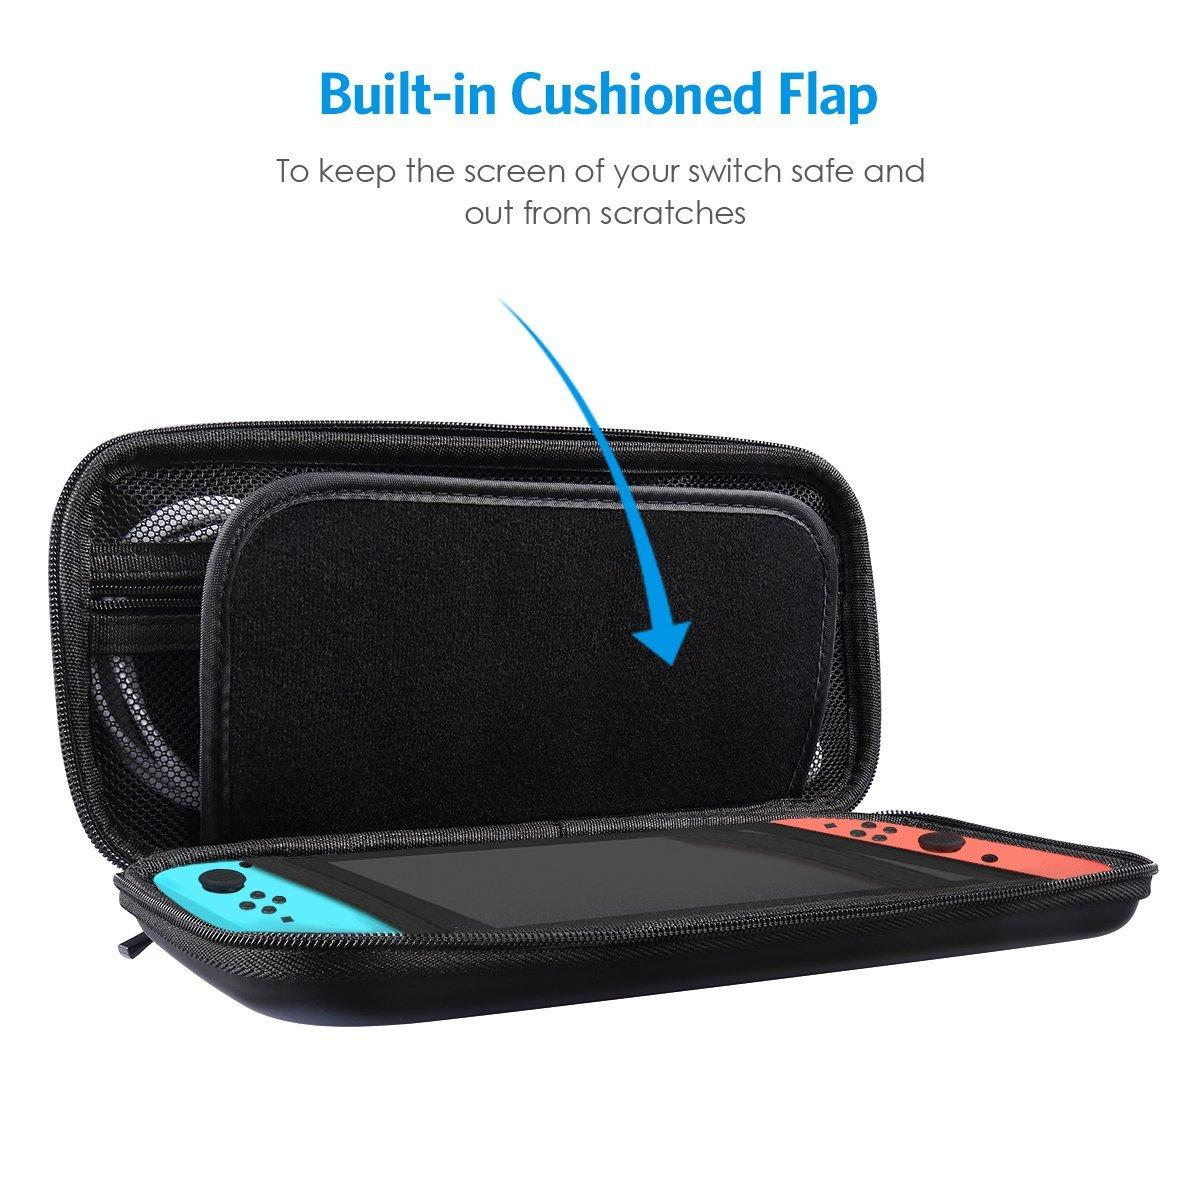 Nintendo Switch Case - Protective EVA Hard Shell - Travel Carrying Case Pouch for Nintendo Switch, 10 Game Cartridges, Accessories, Black